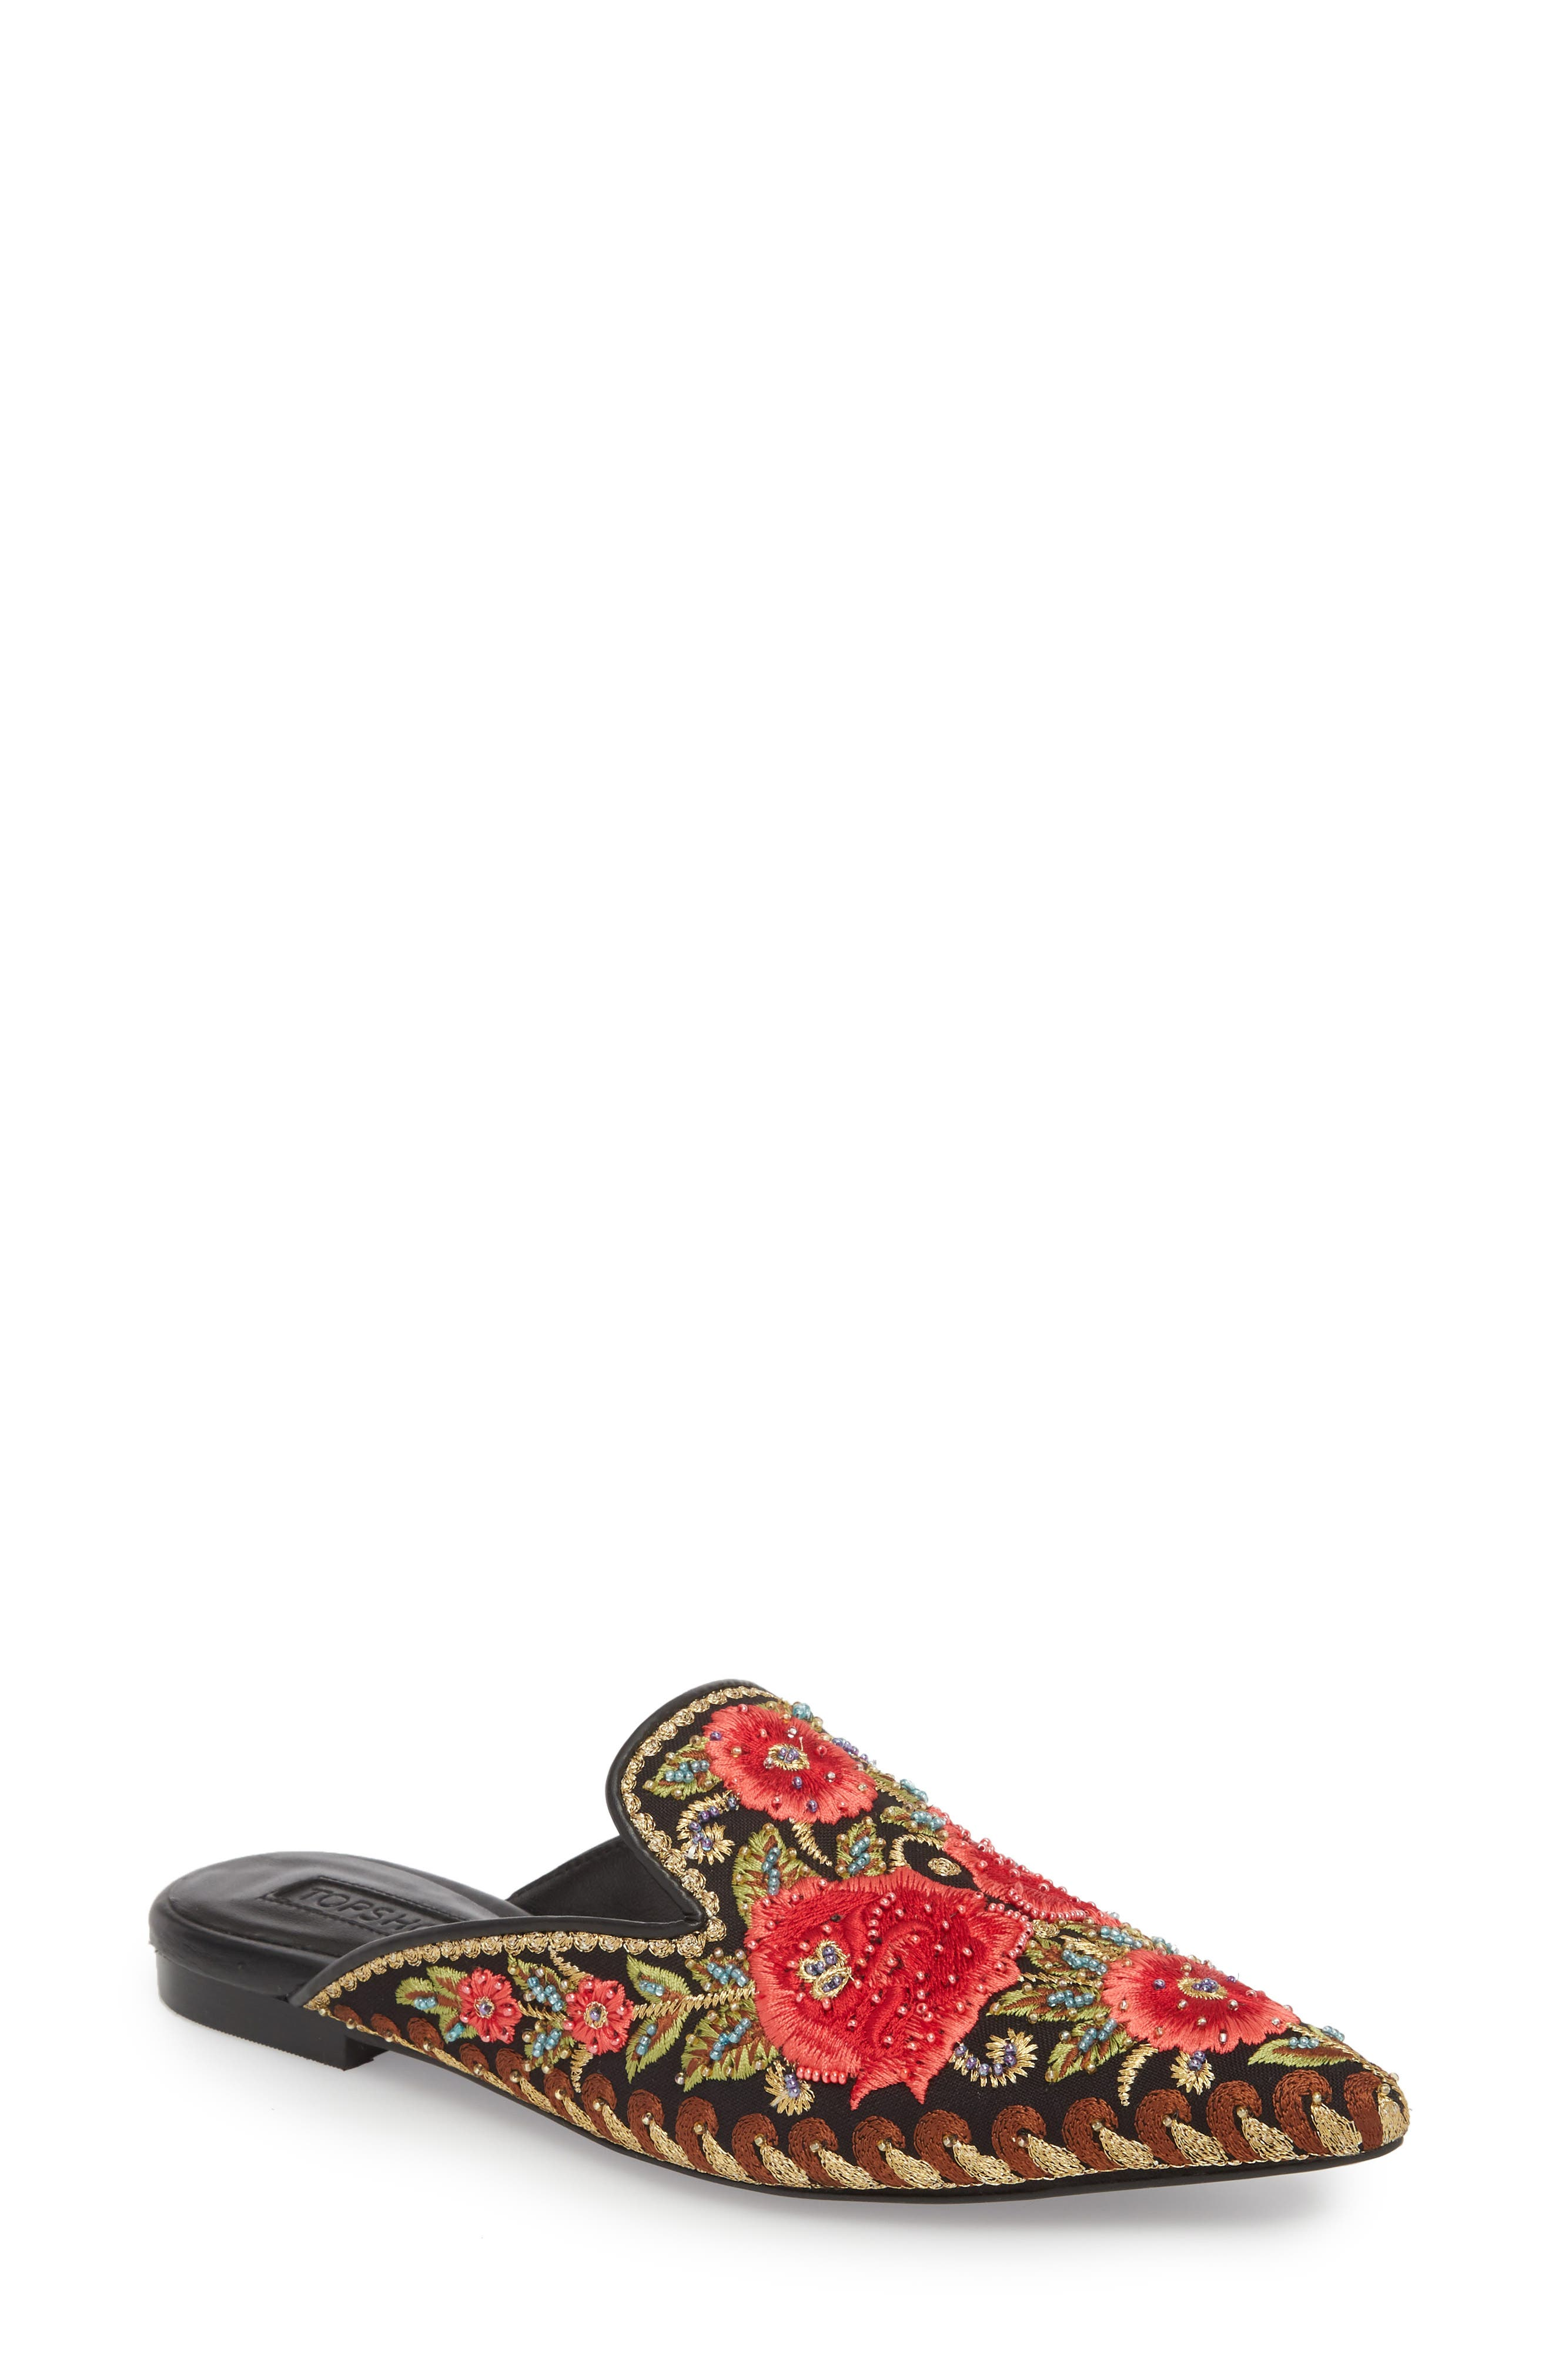 Katja Embroidered Mule,                         Main,                         color, Black Multi